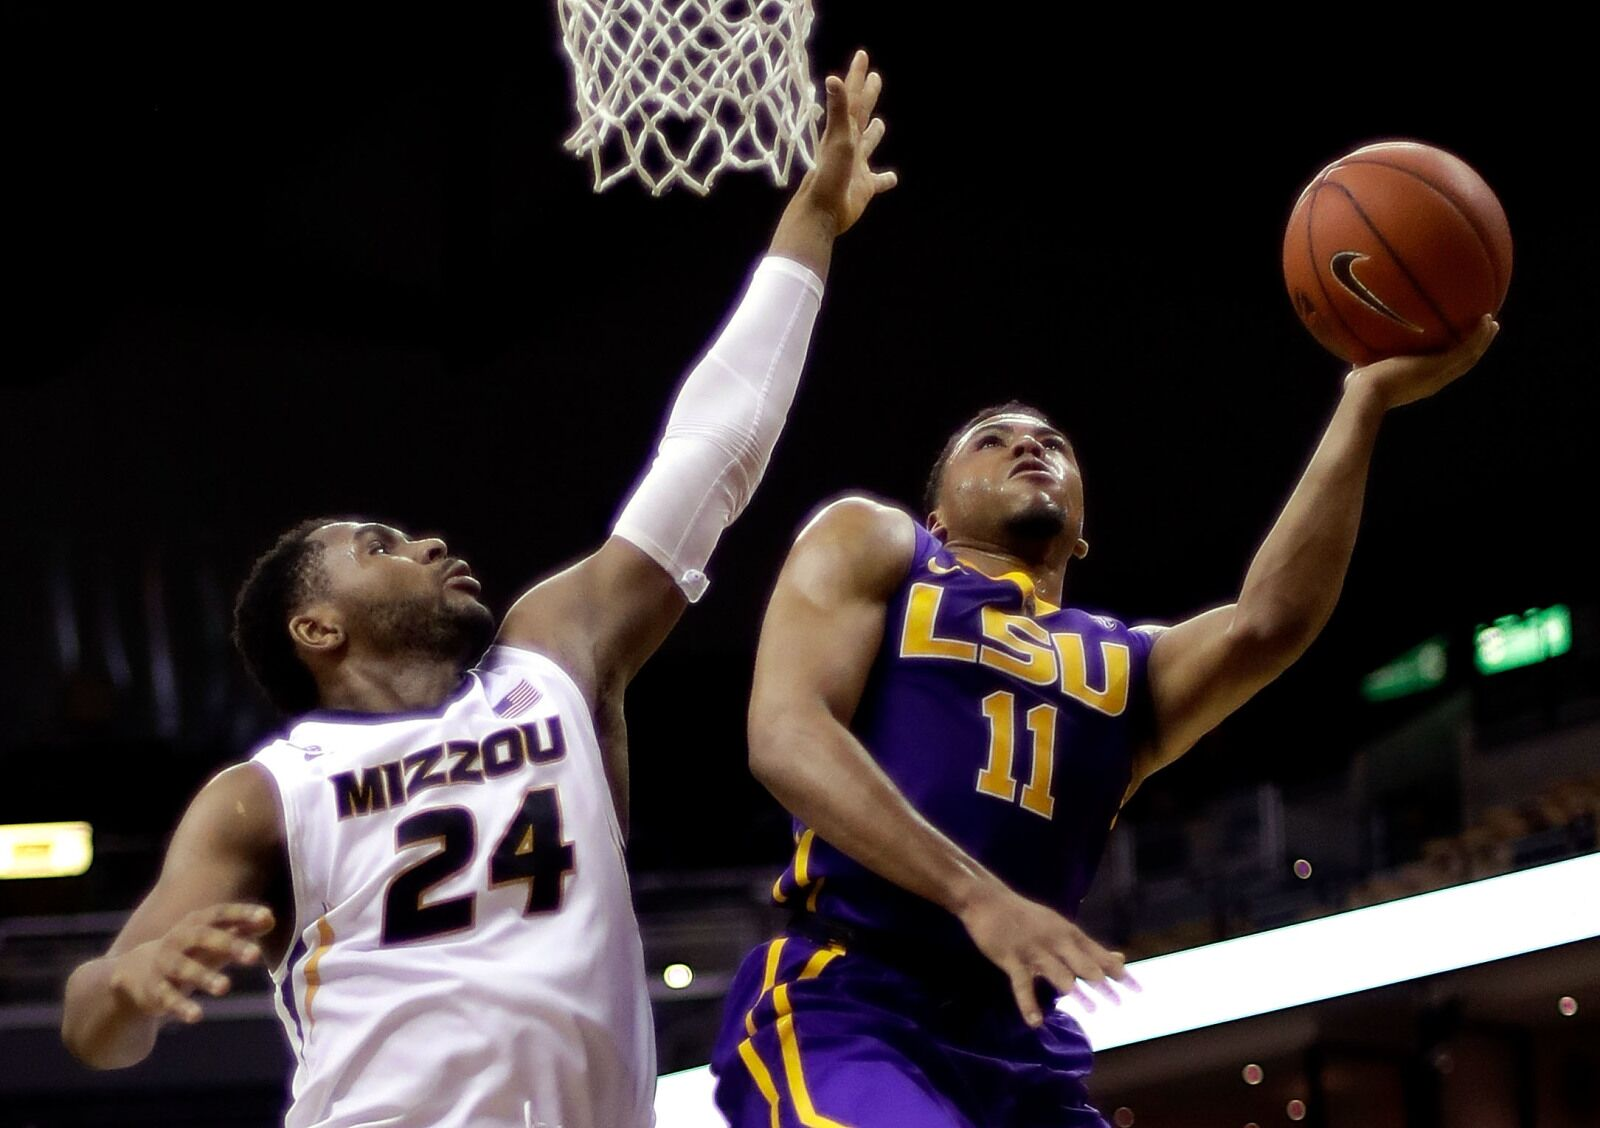 LSU Basketball: 2018-19 season preview for the Tigers